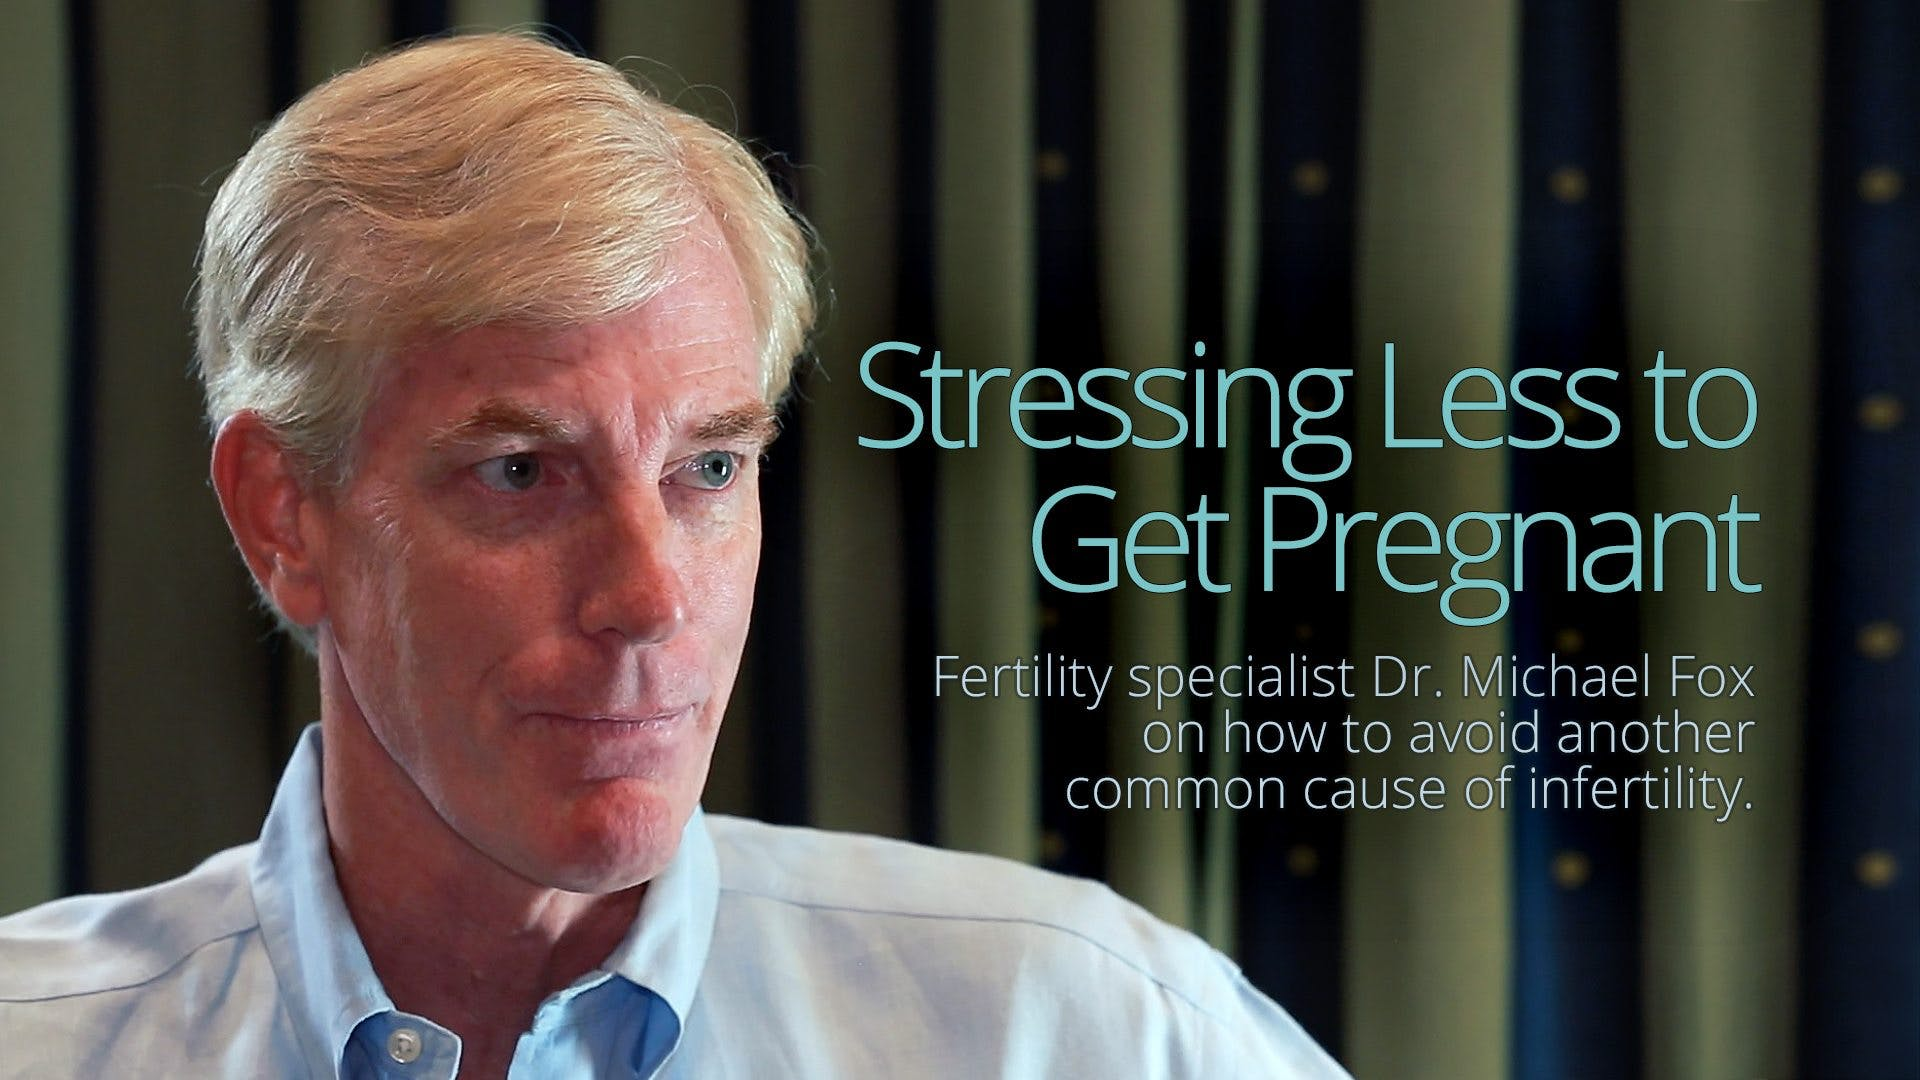 Stressing Less to Get Pregnant